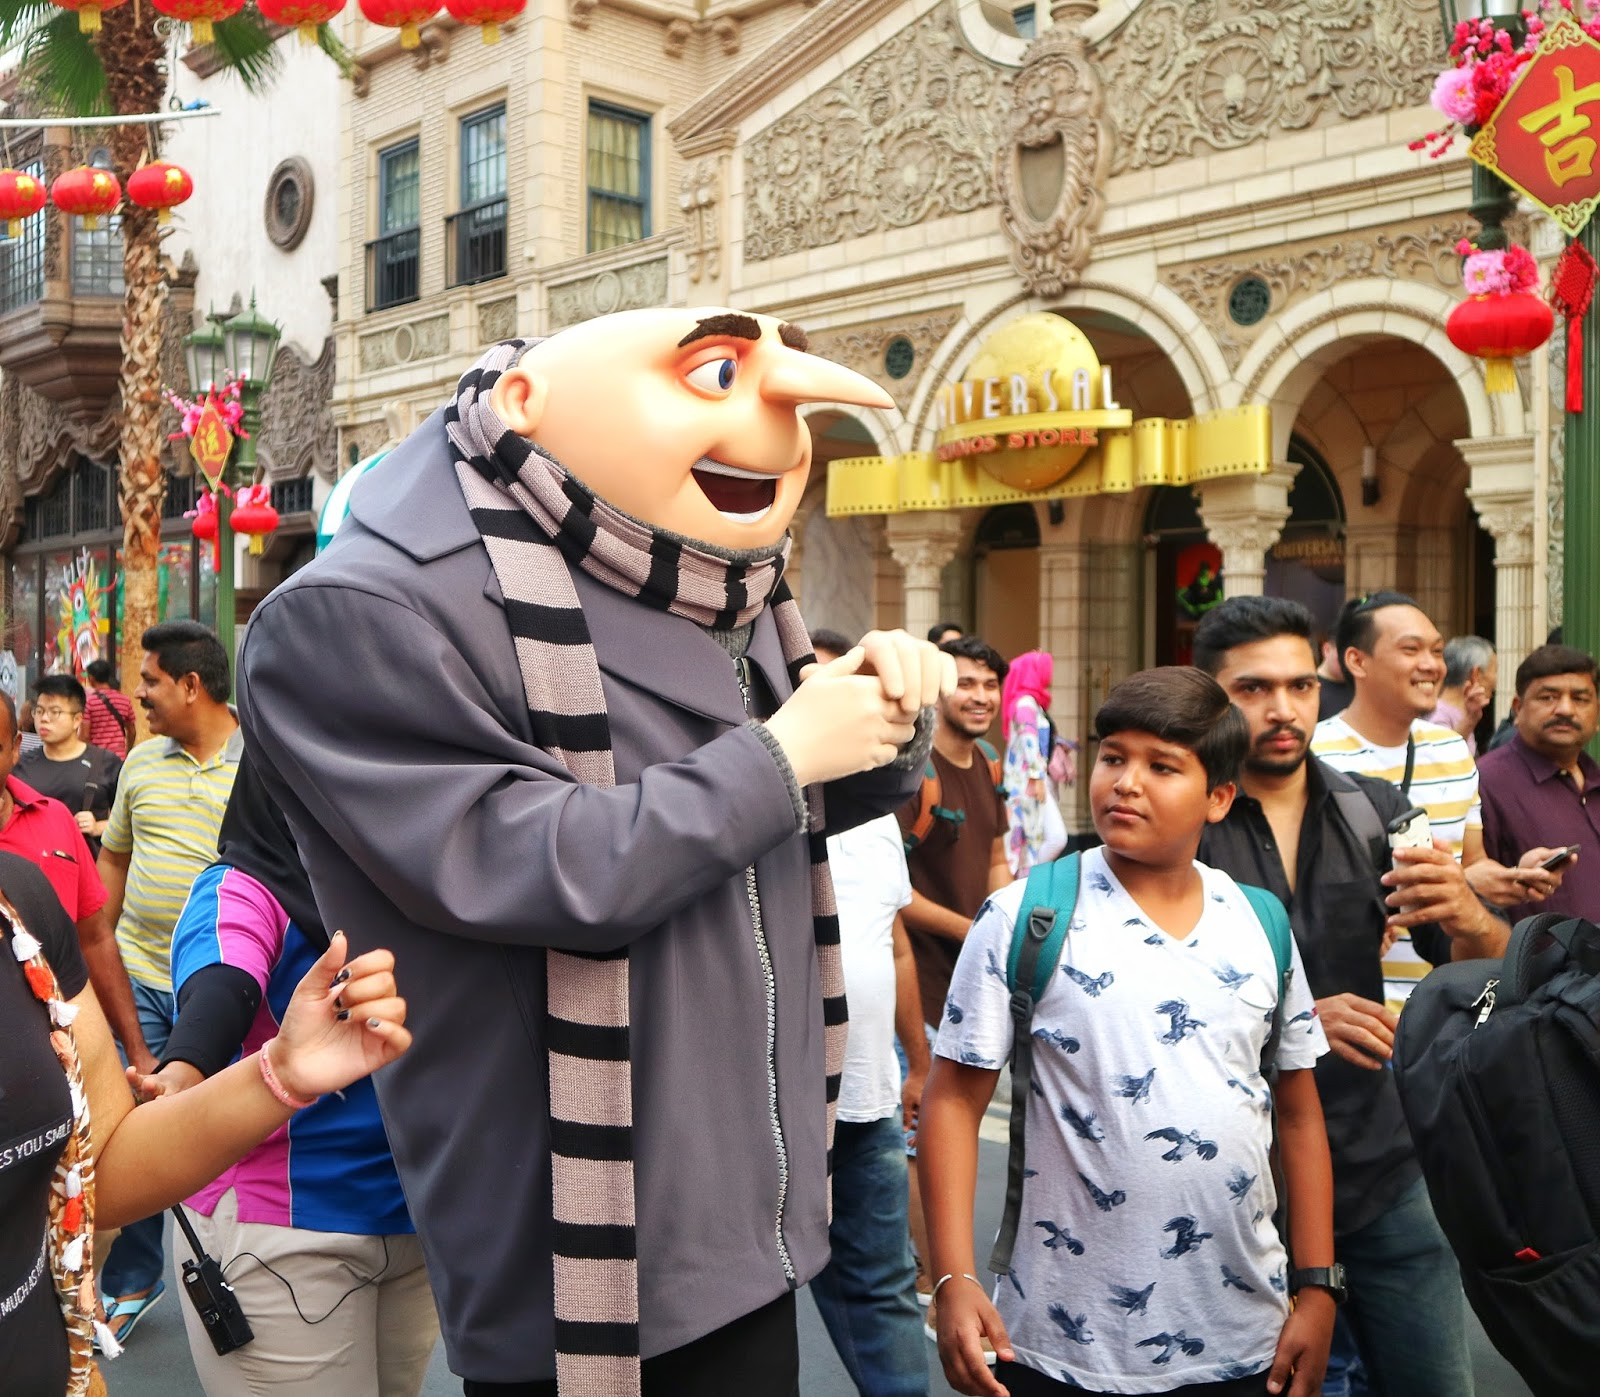 Universal Studios Singapore - Gru from Minions and Despicable Me